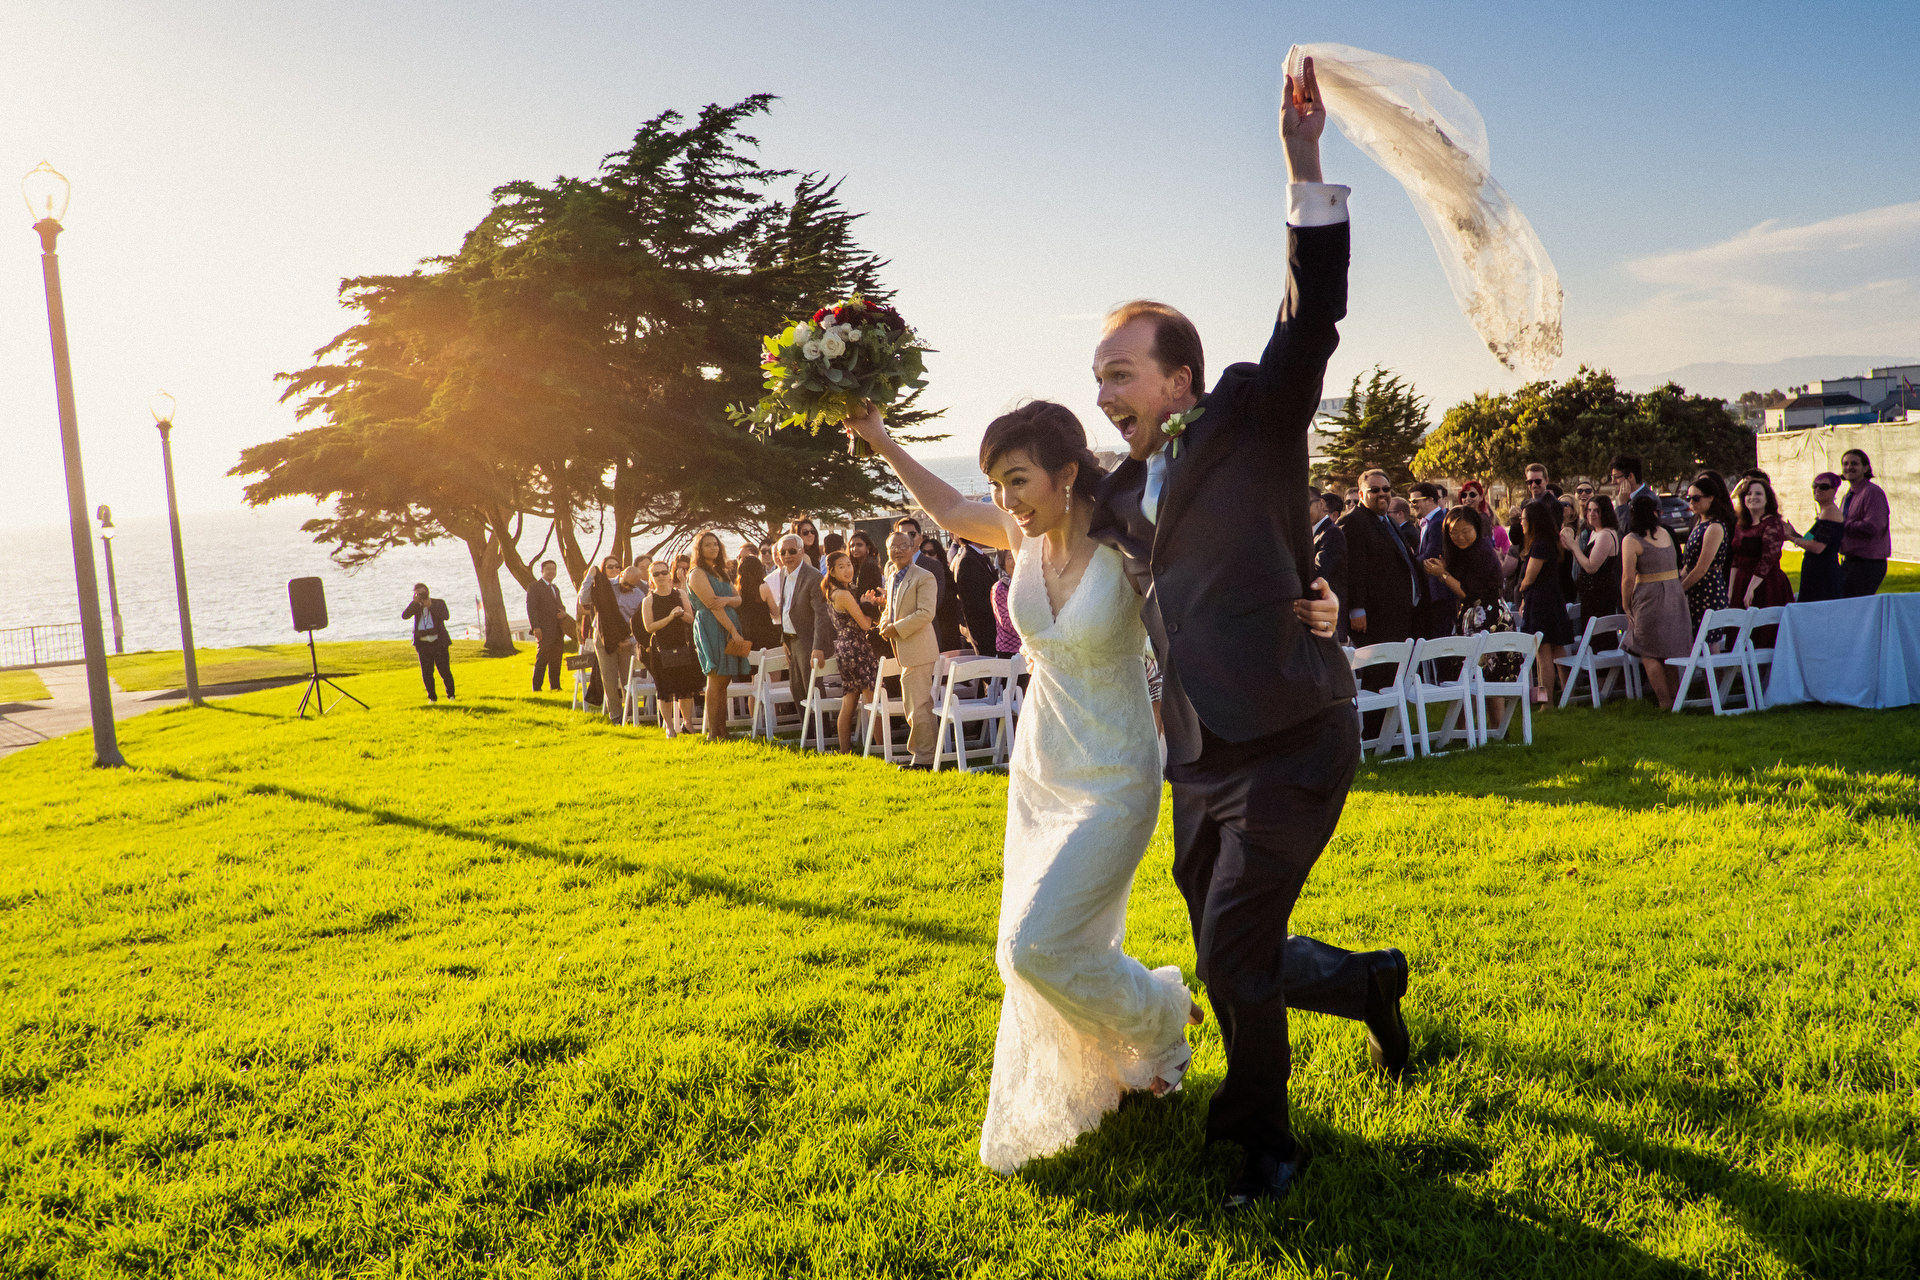 just-married-couple-wave-bouquet-tallit-annie-bang-los-angeles